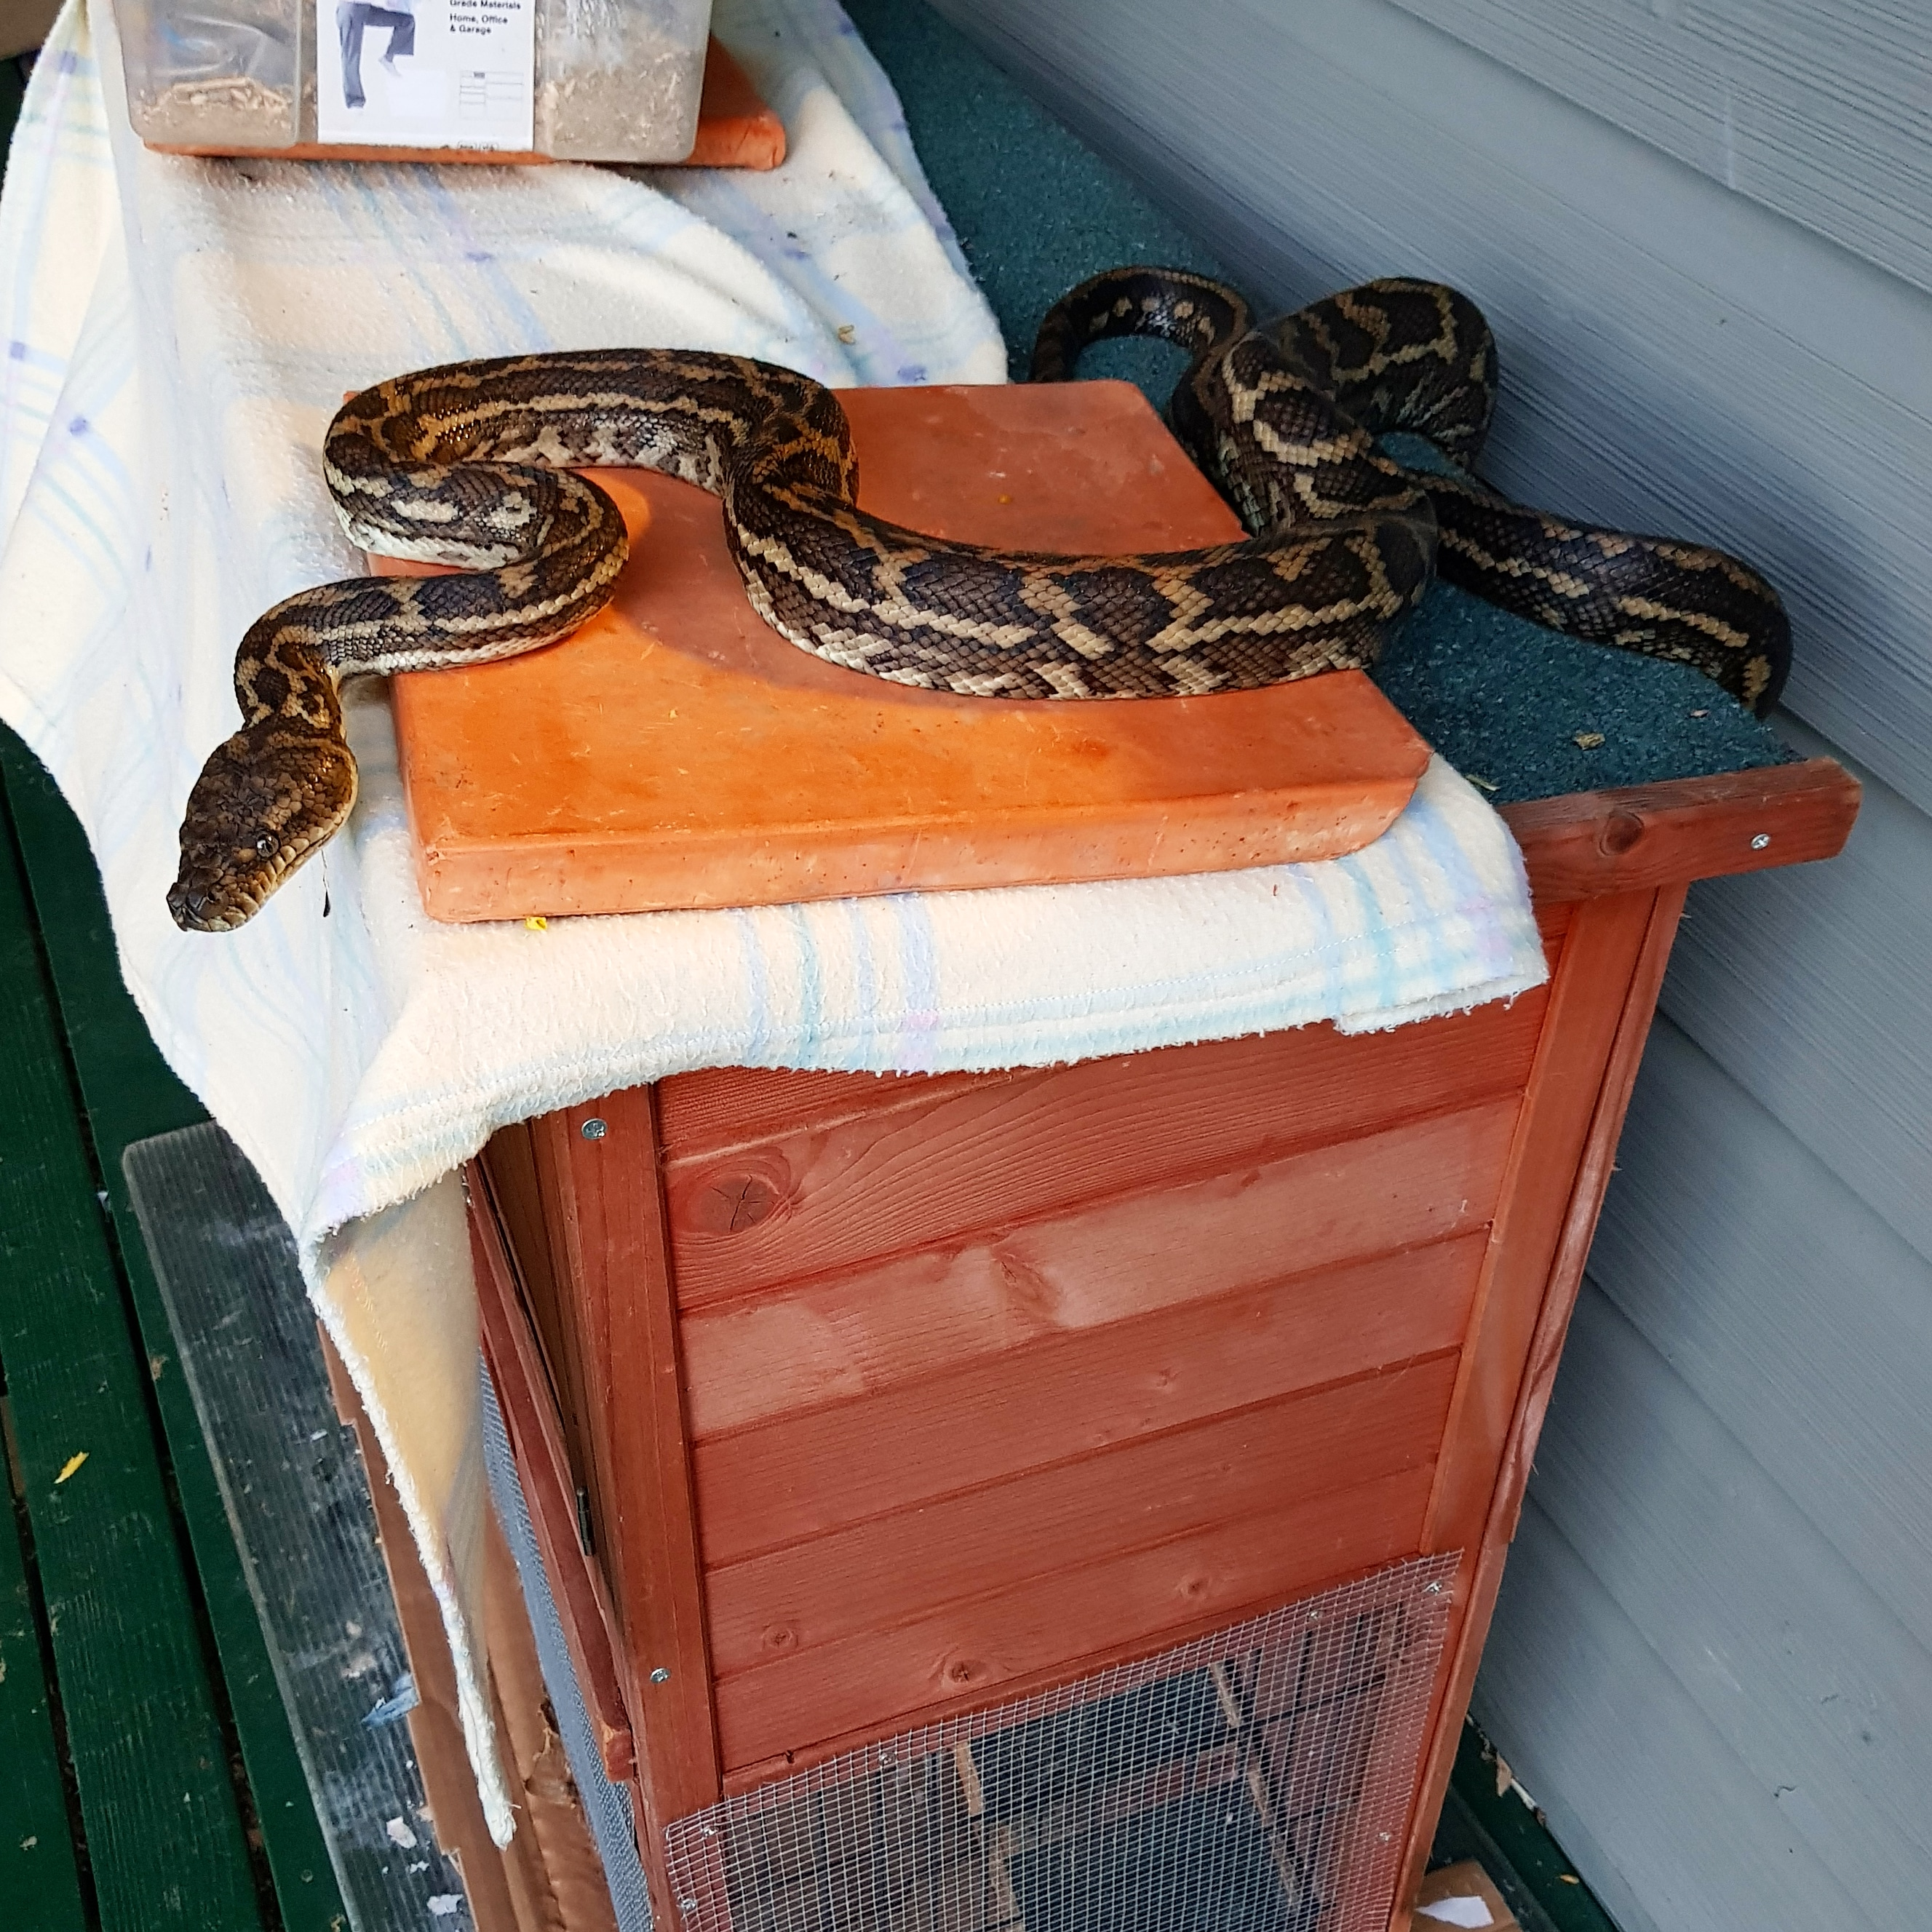 snake on pet cage